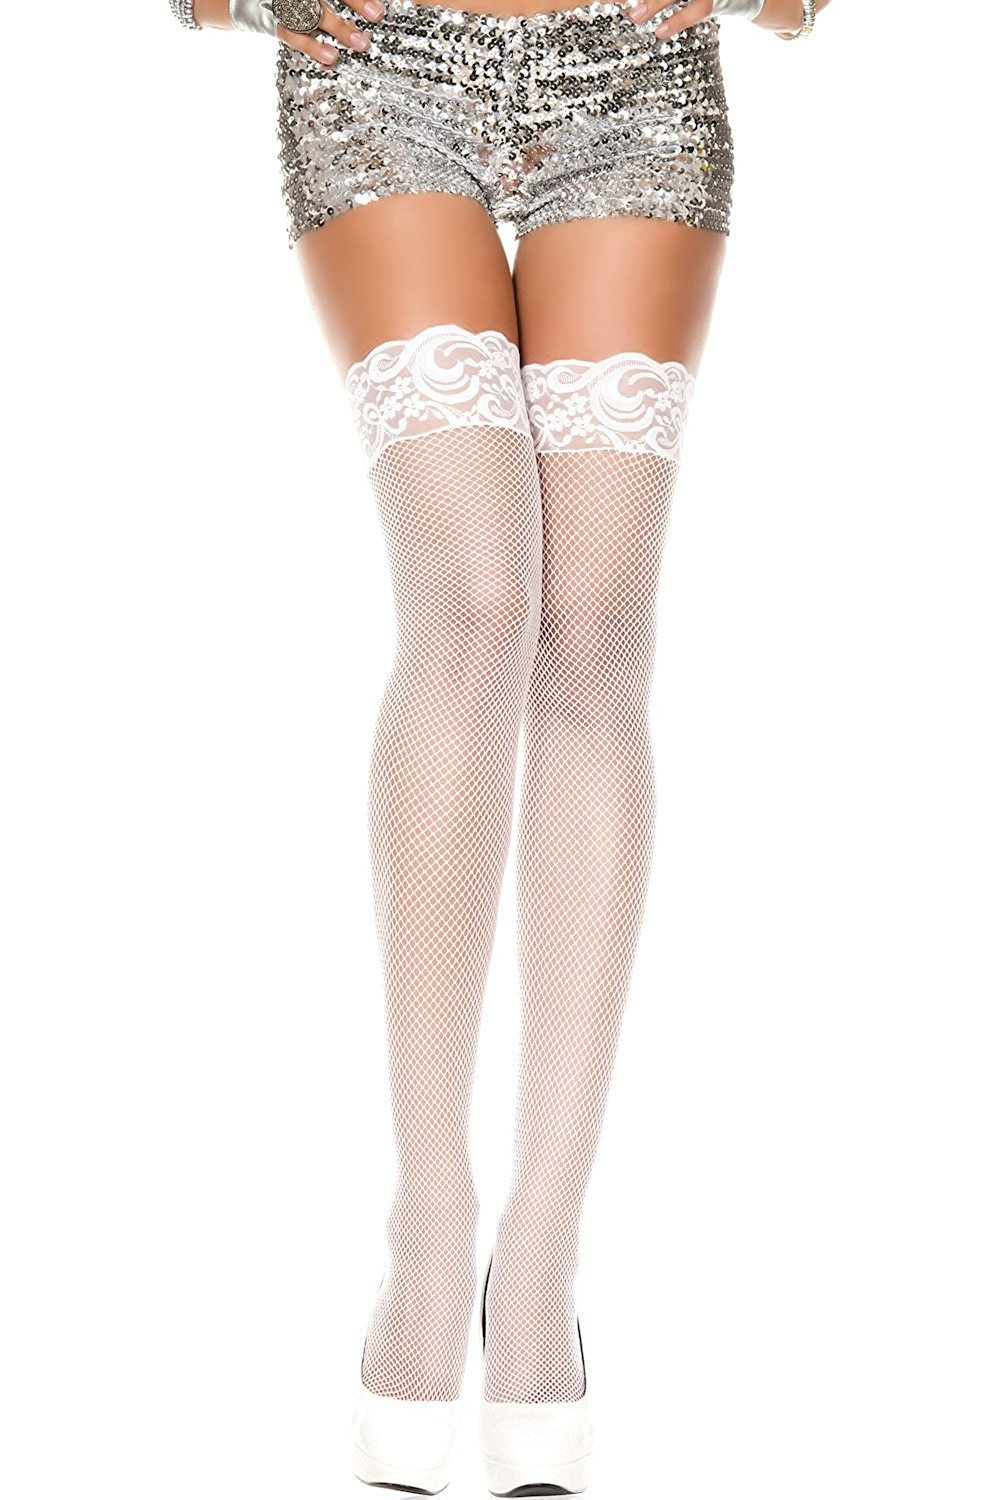 26519a093 Bridal White Stockings Hosiery Thigh Highs